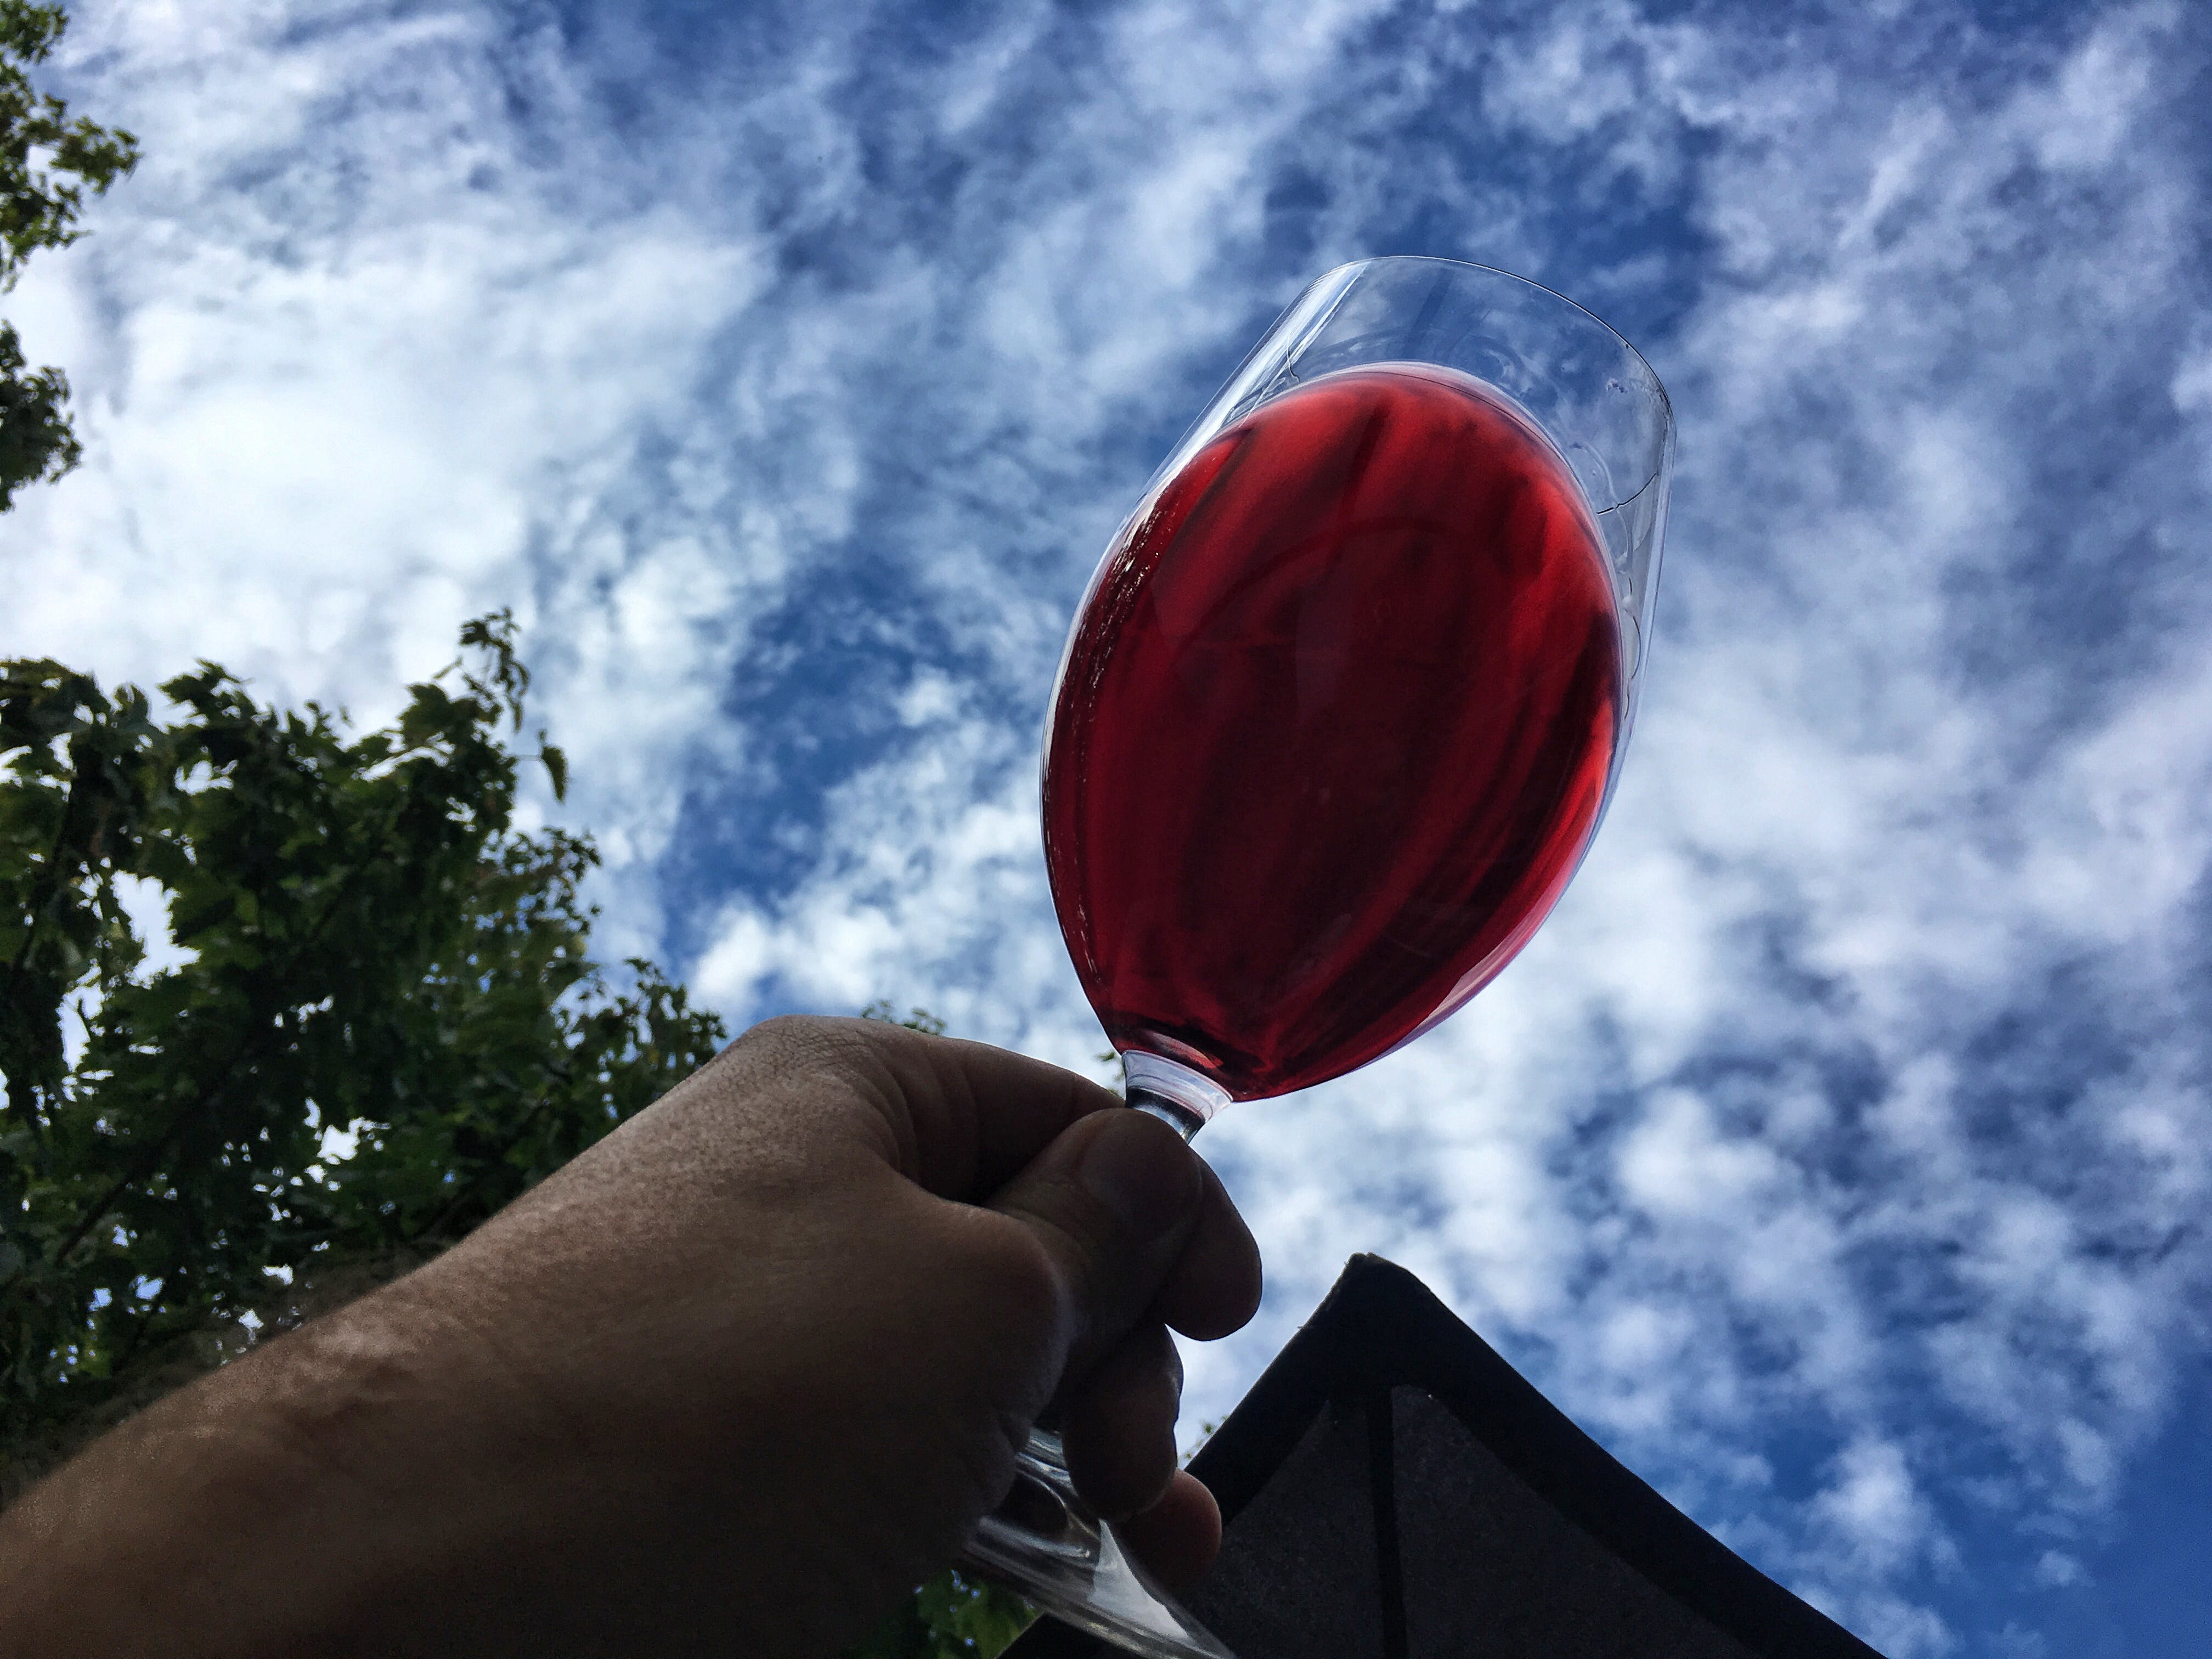 Free stock photo of cloudy sky, red wine, toast, wine glass